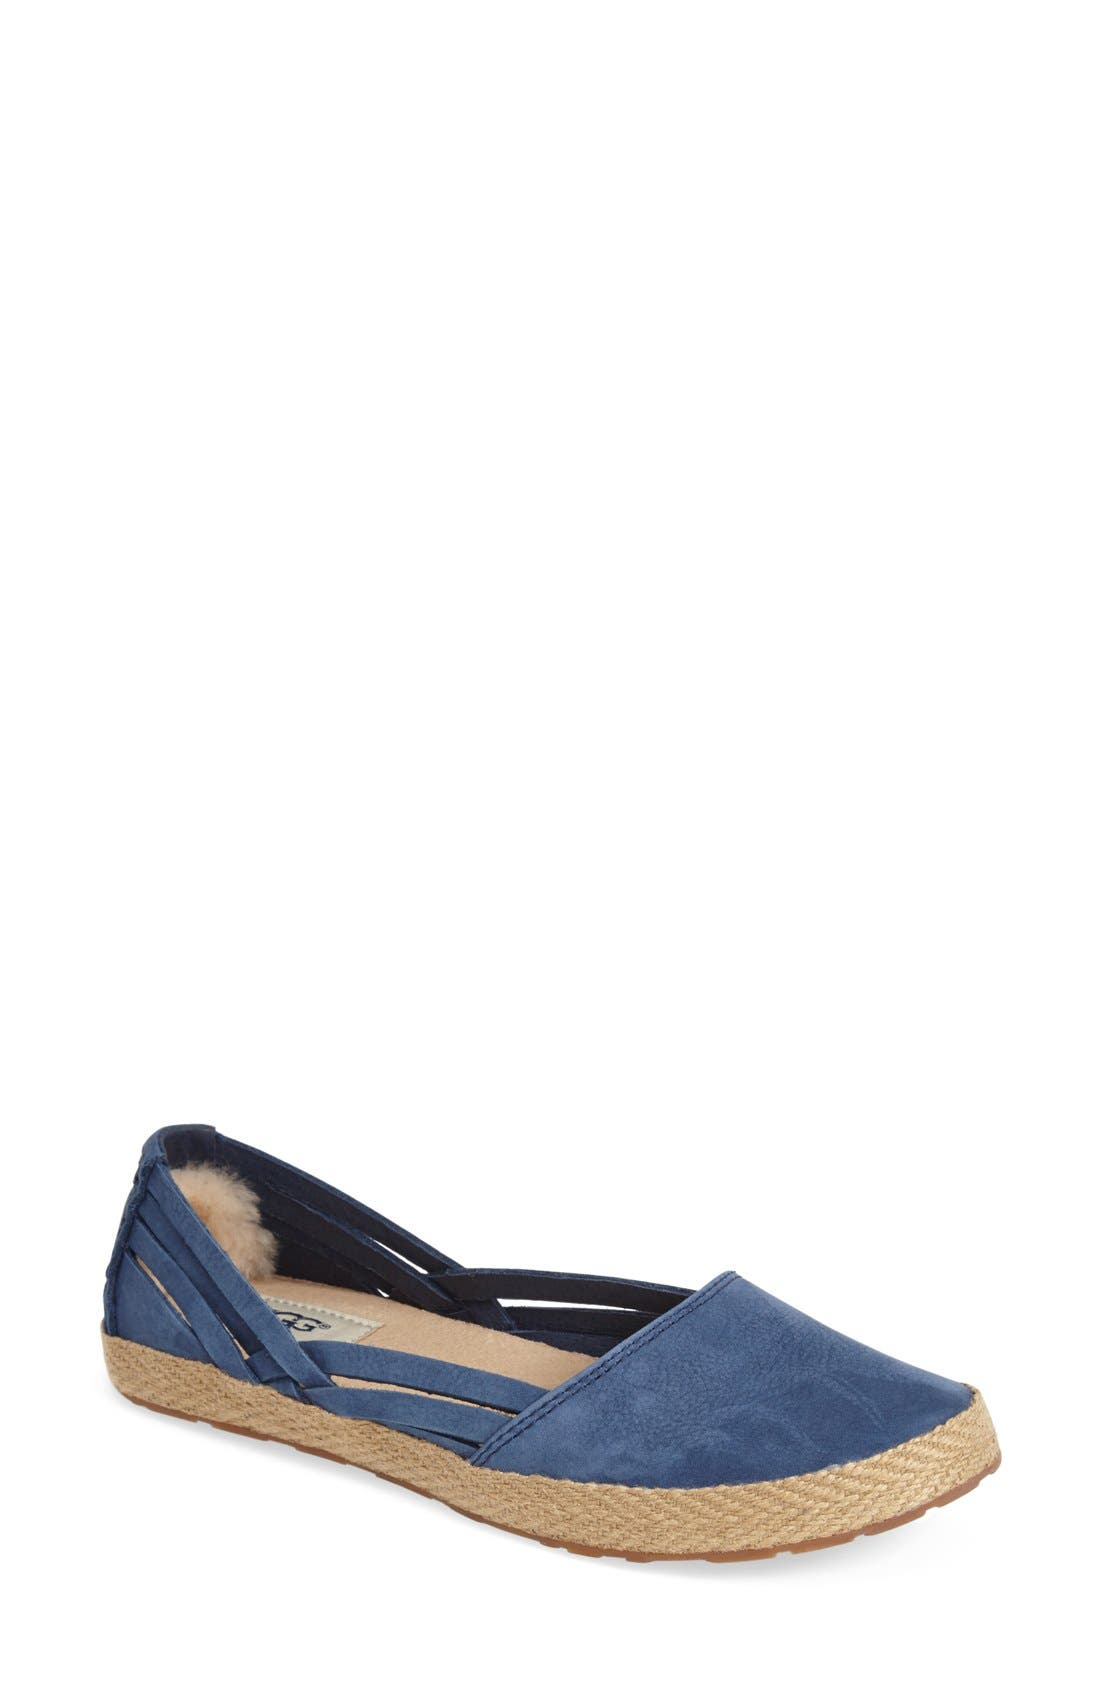 UGG Flats Shoes Womens - UGG Cicily Leather White